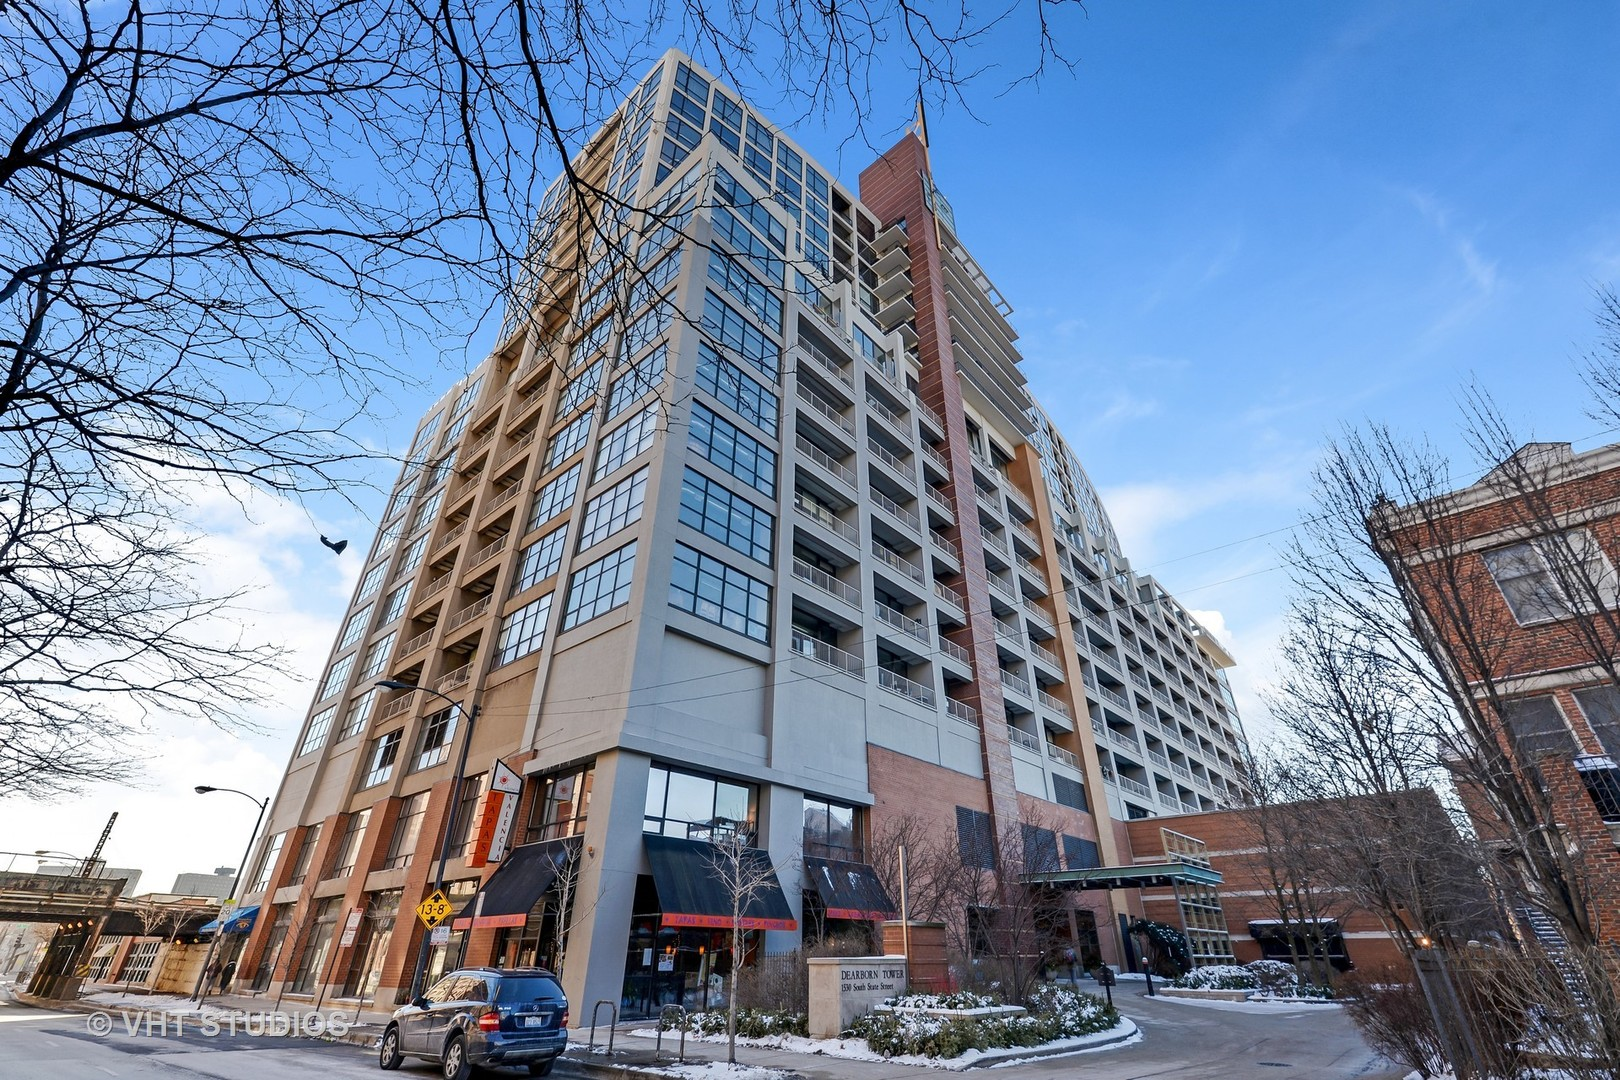 1530 SOUTH STATE STREET #18A-B, CHICAGO, IL 60605